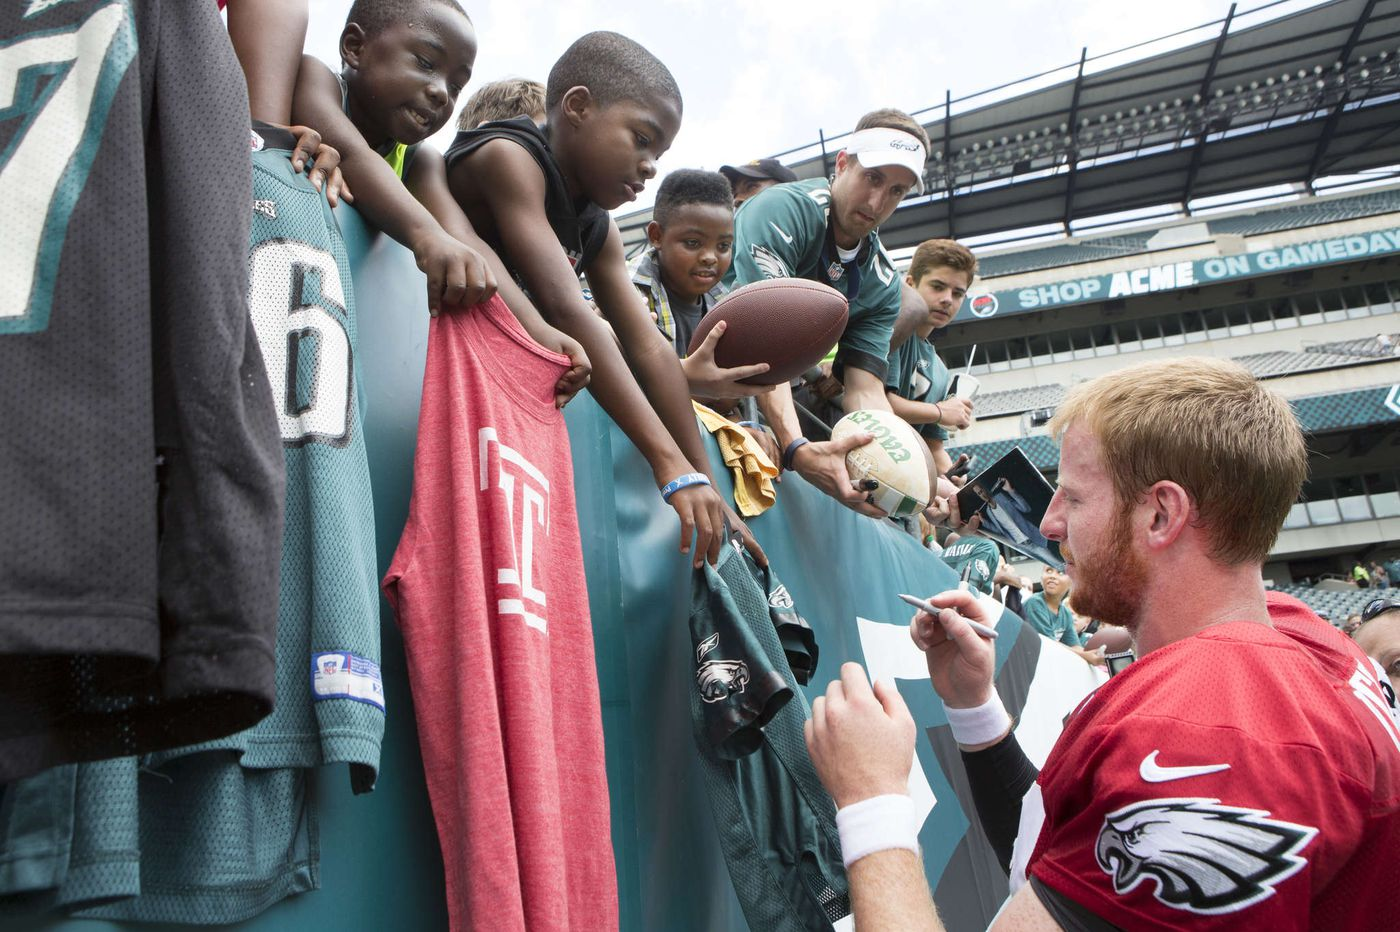 Eagles' decision on open practice draws mixed reaction from fans, sports talkers